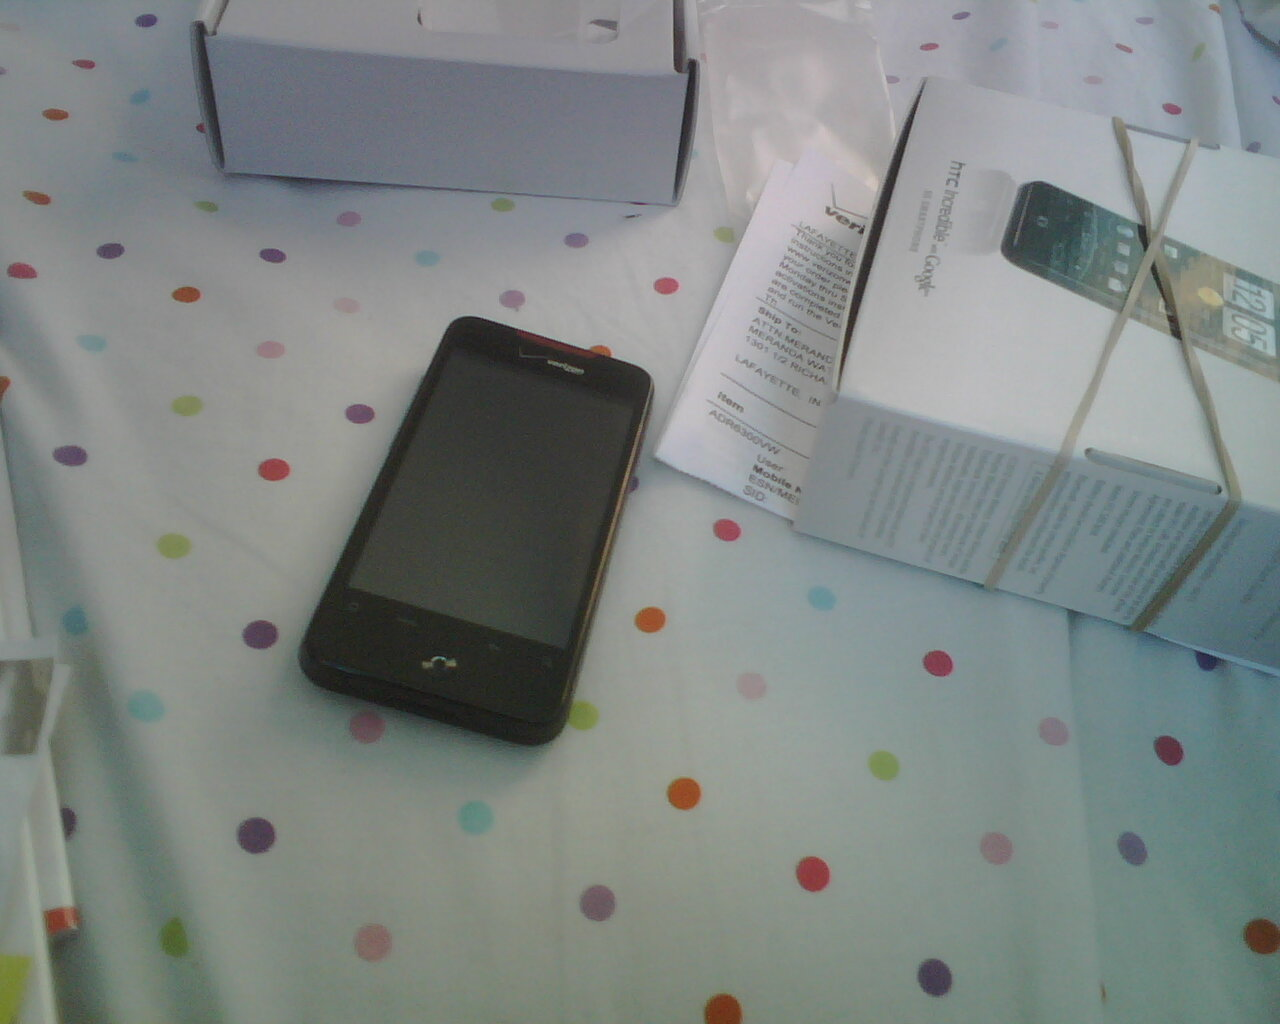 My new phone